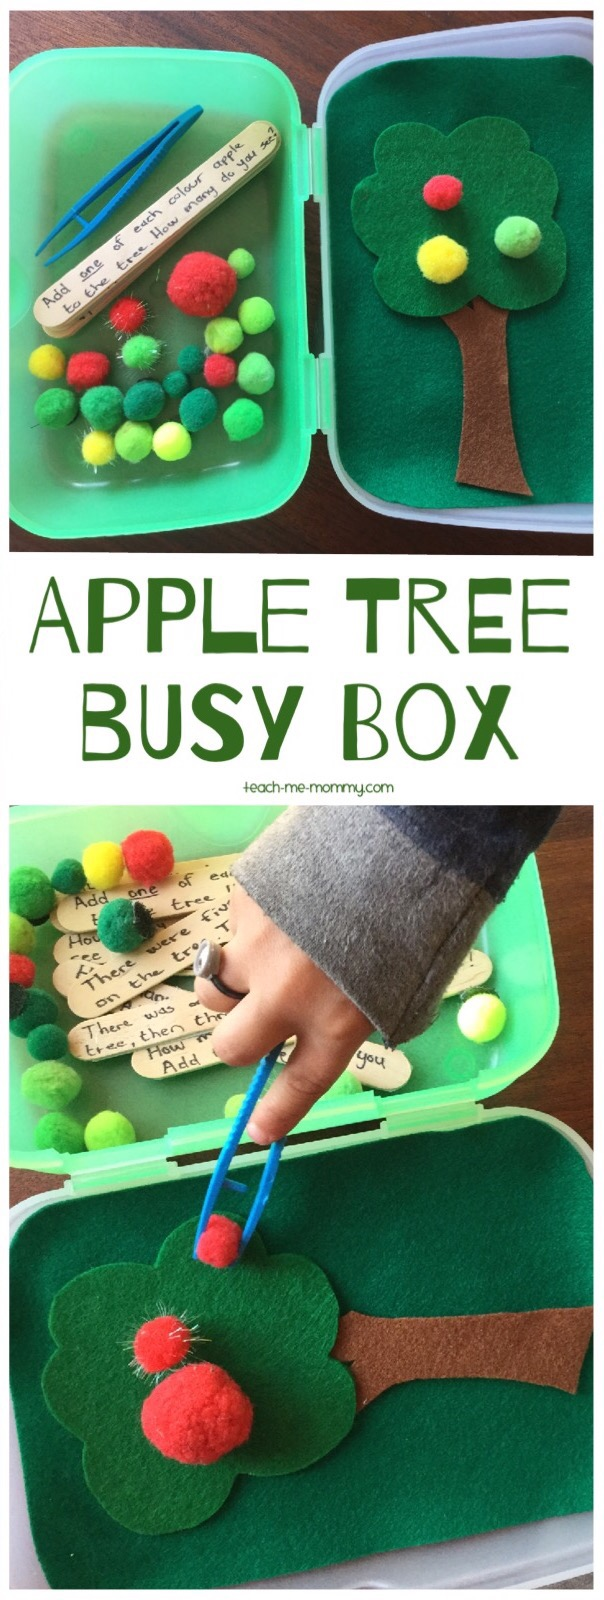 apple tree busy box